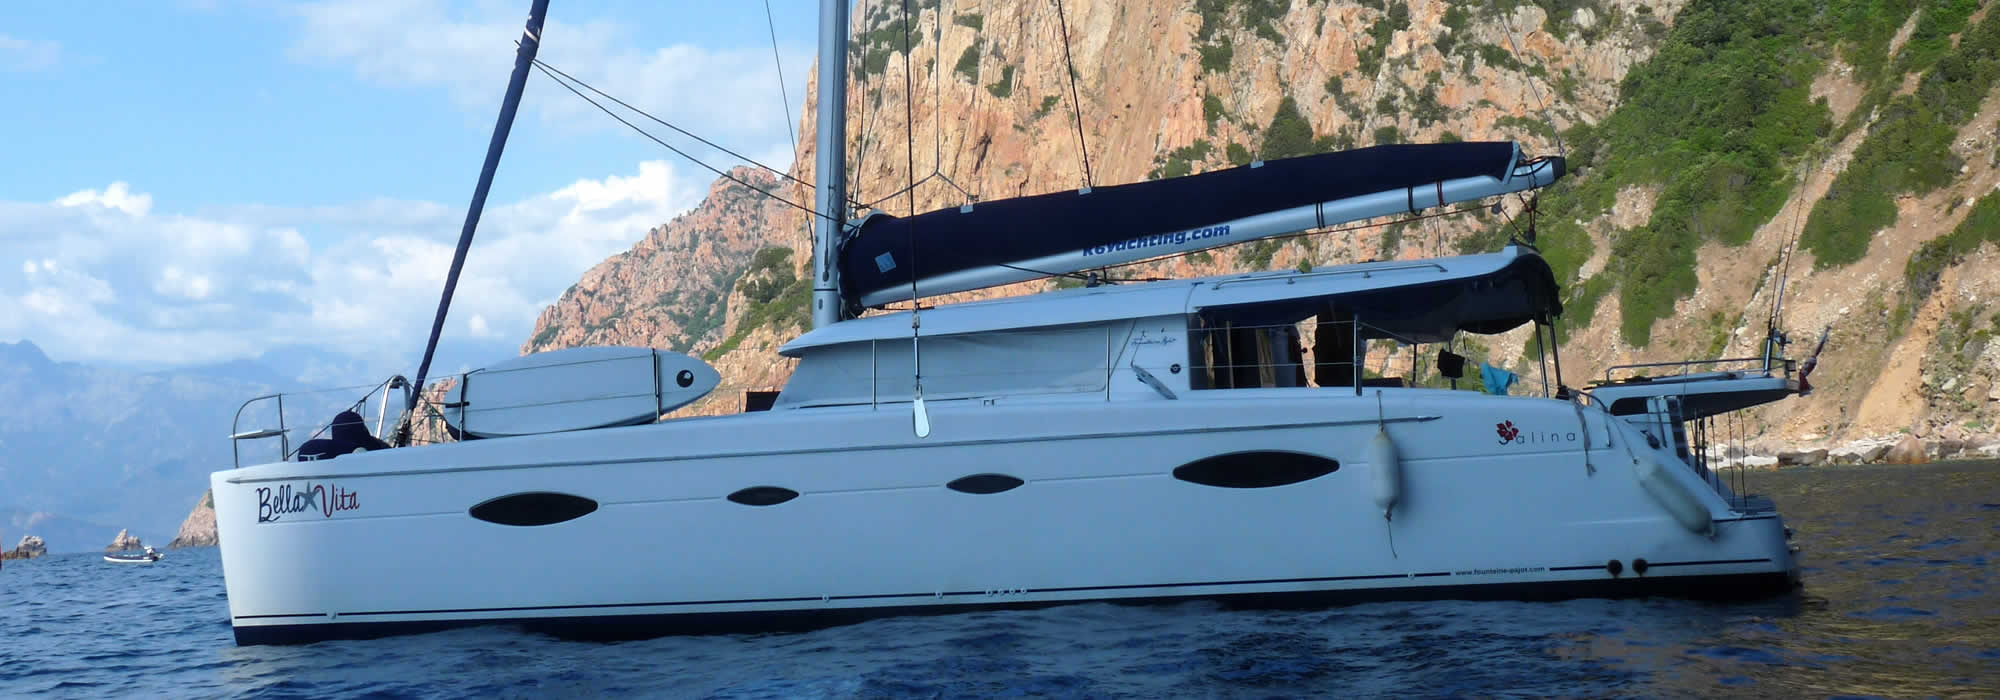 Rent a catamaran french riviera